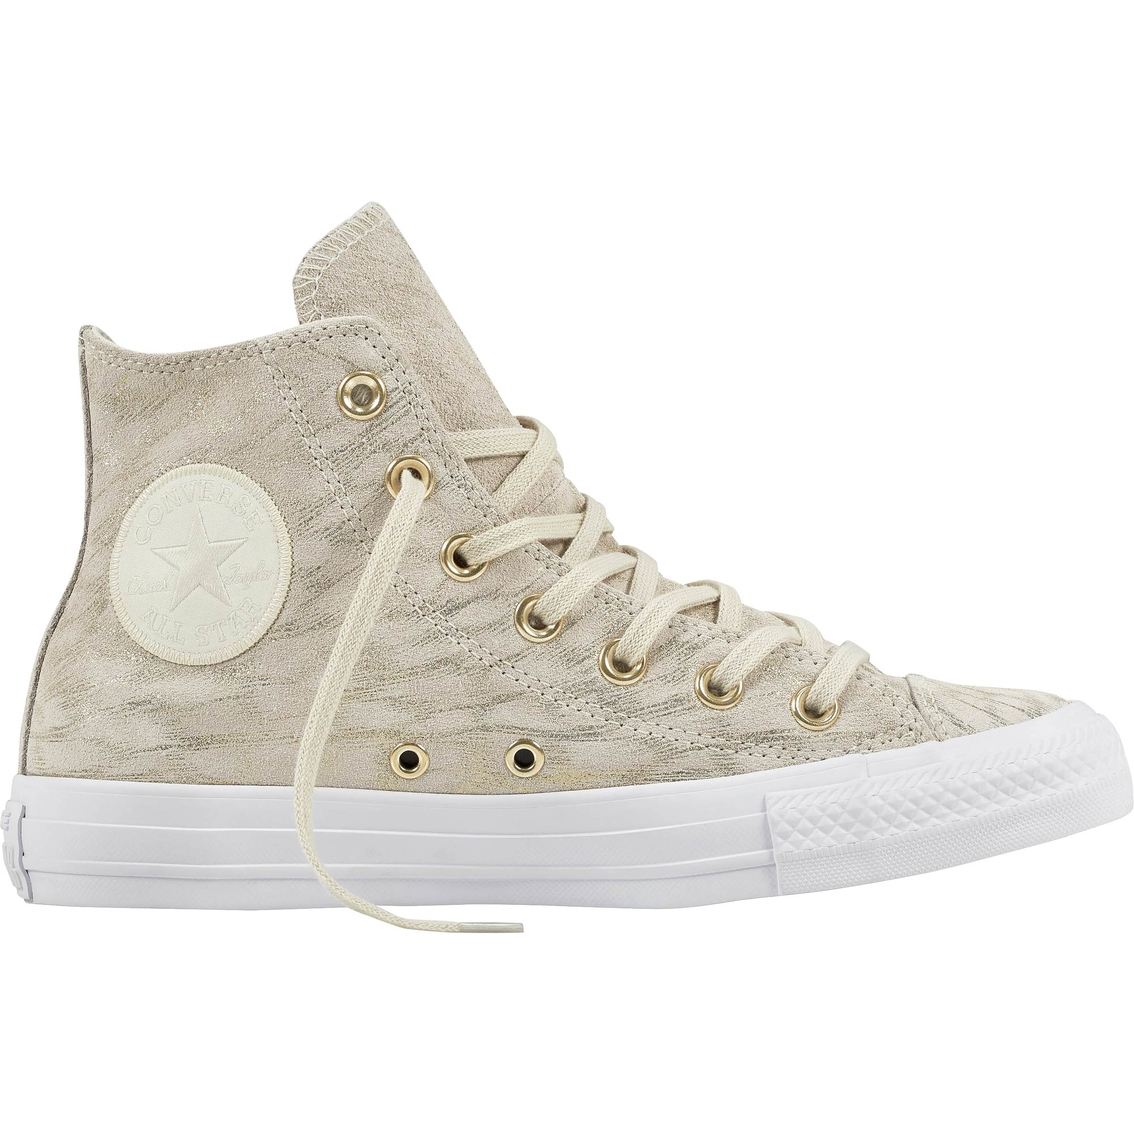 Converse Women s Chuck Taylor All Star High Top Shimmer Suede Sneakers 4a1a819936